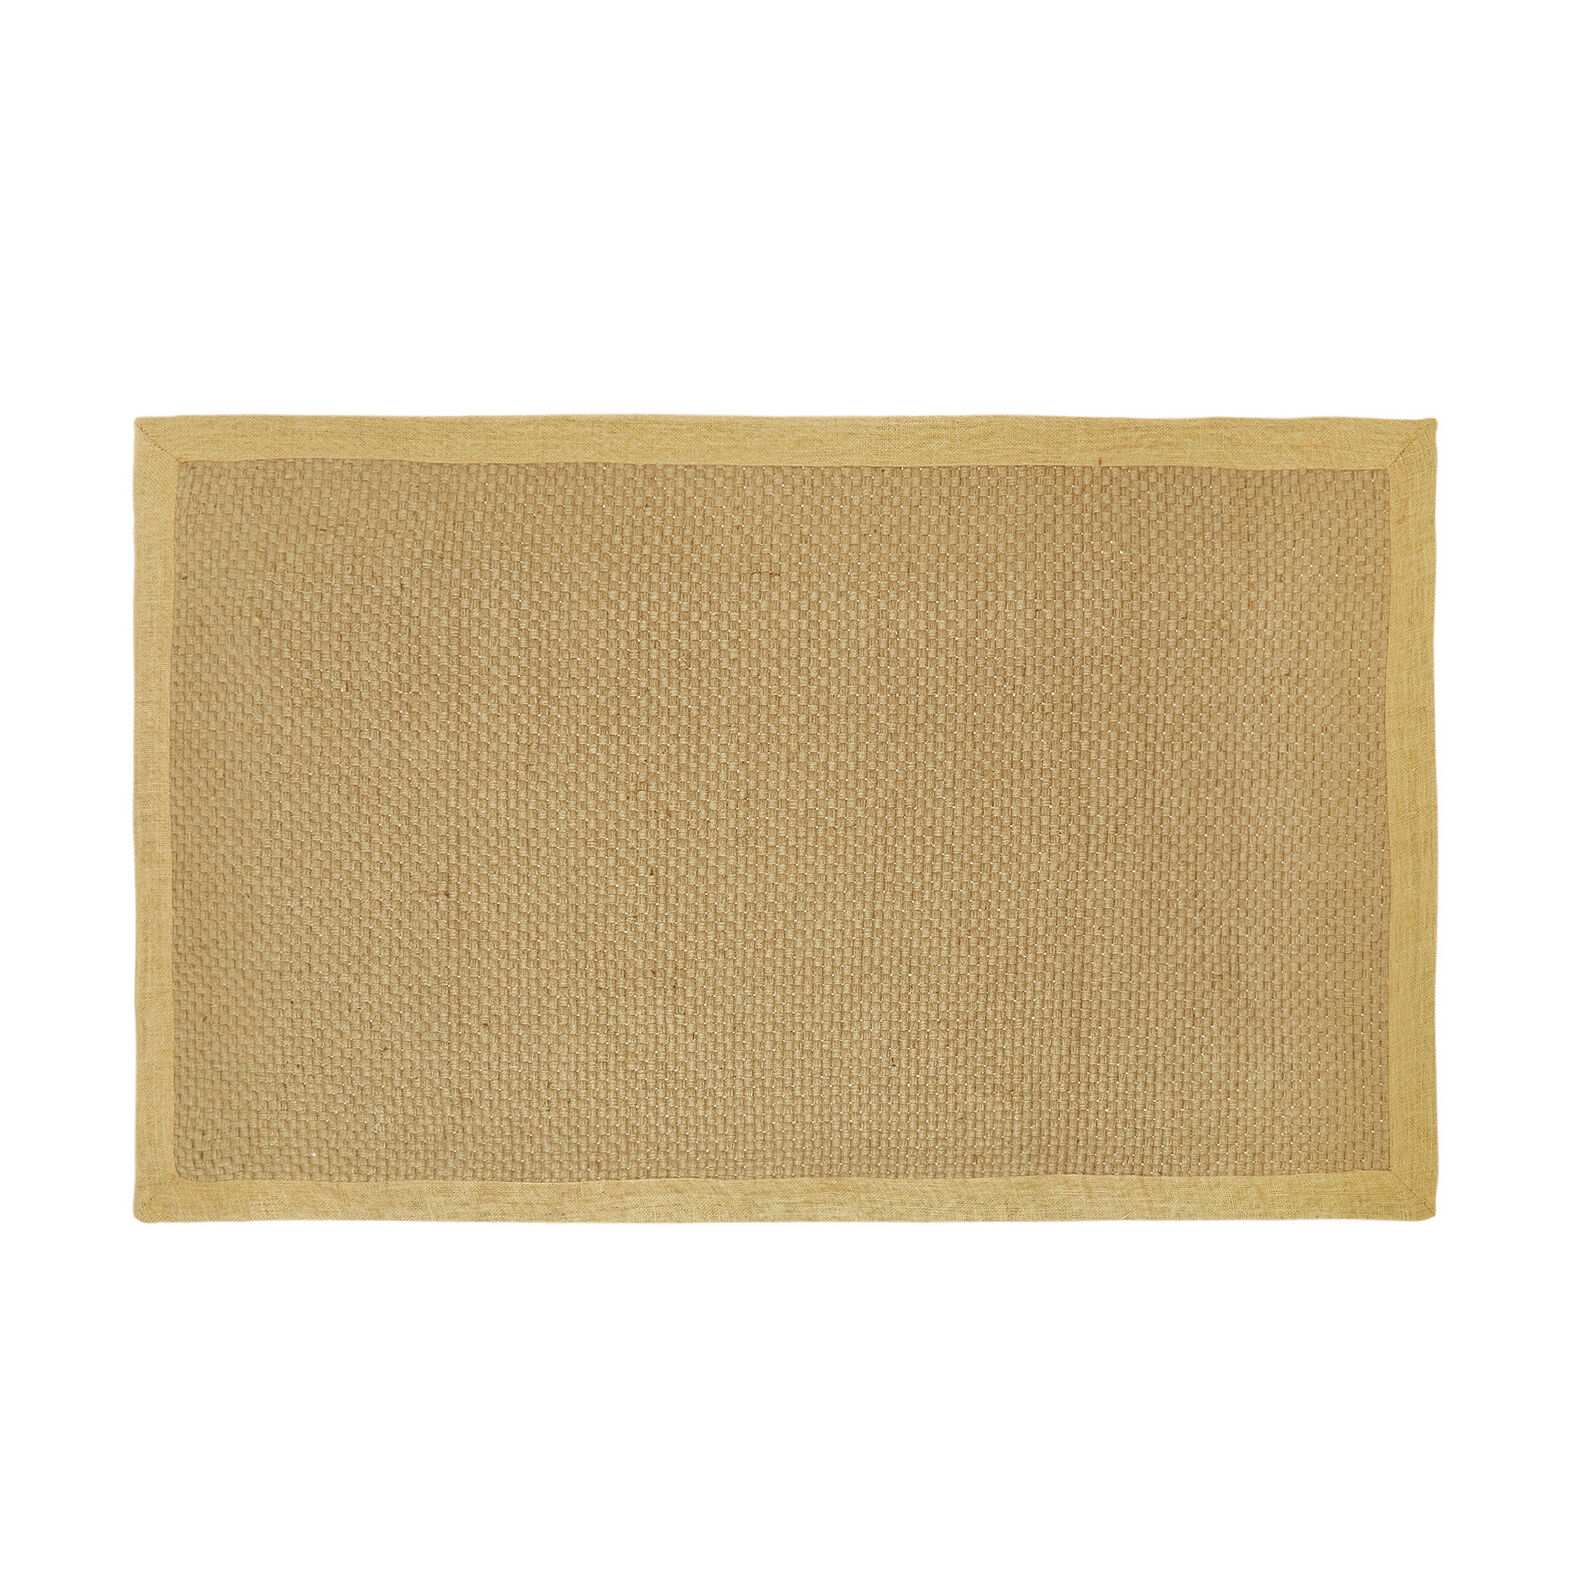 Jute mat with contrasting edging